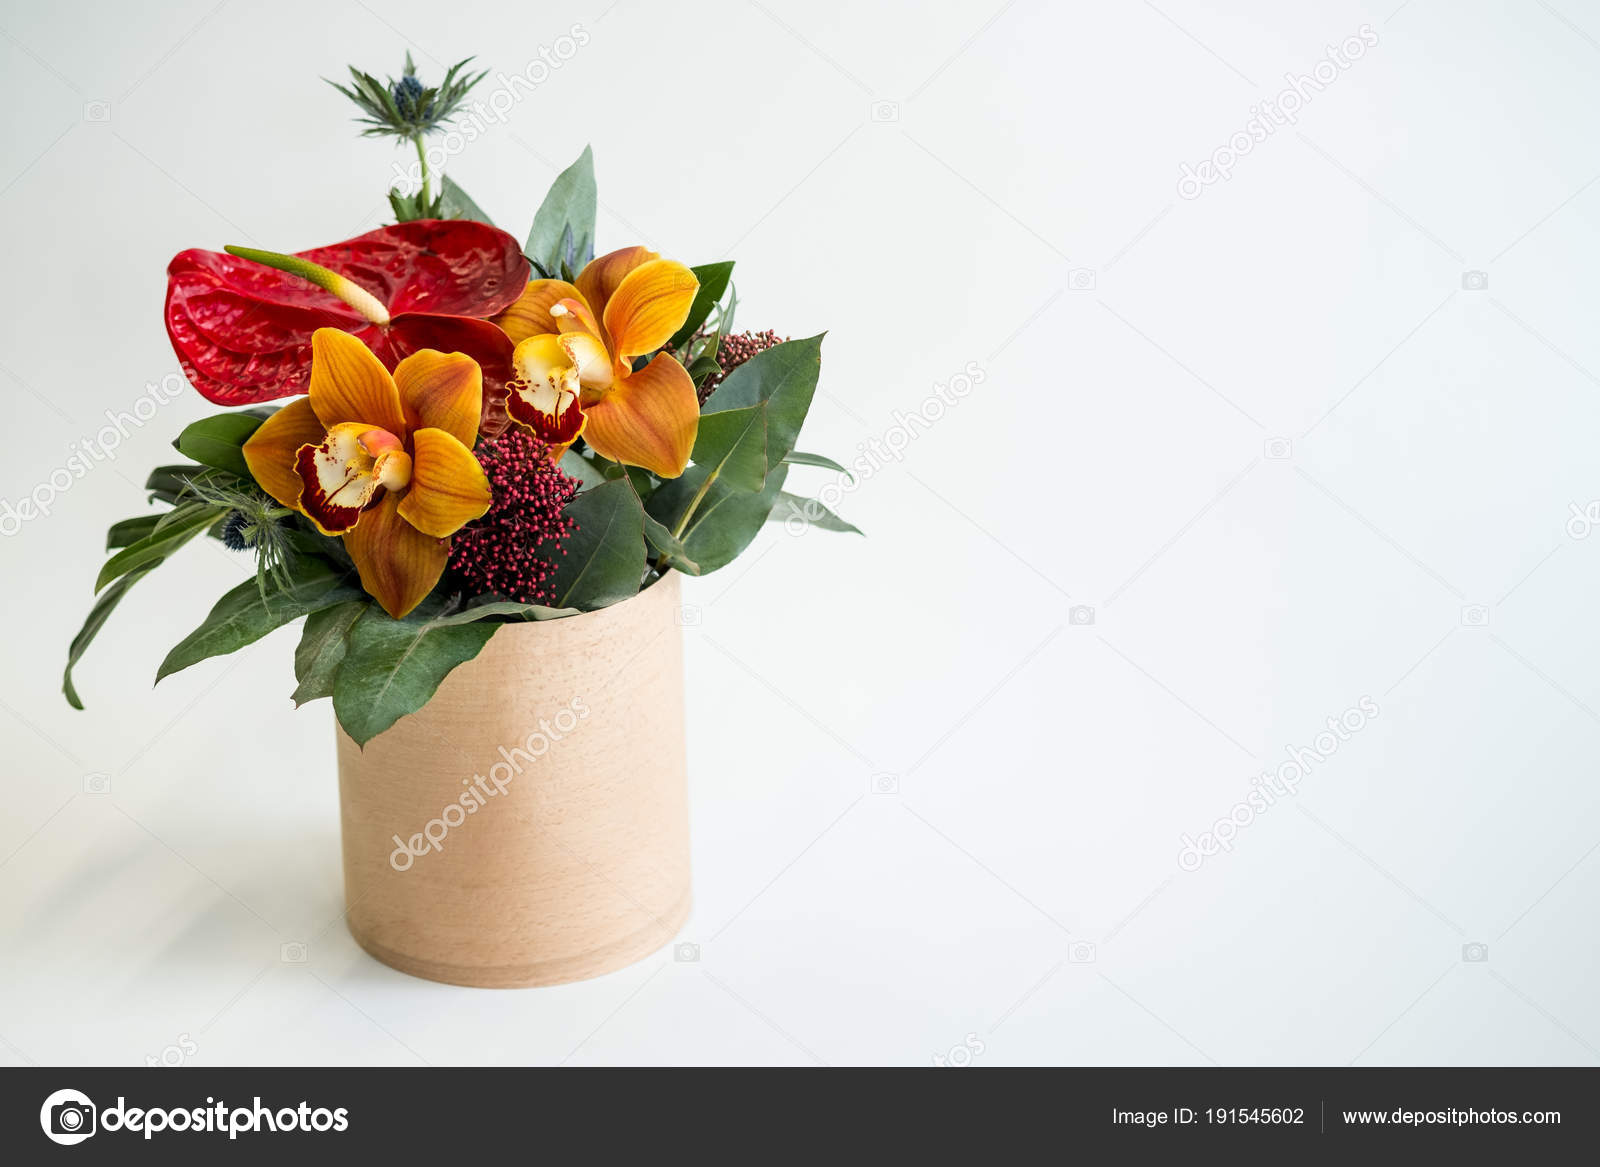 Color Flowers Bouquet Rustic Vase White Background Copy Space Stock Photo C Stockoholic 191545602